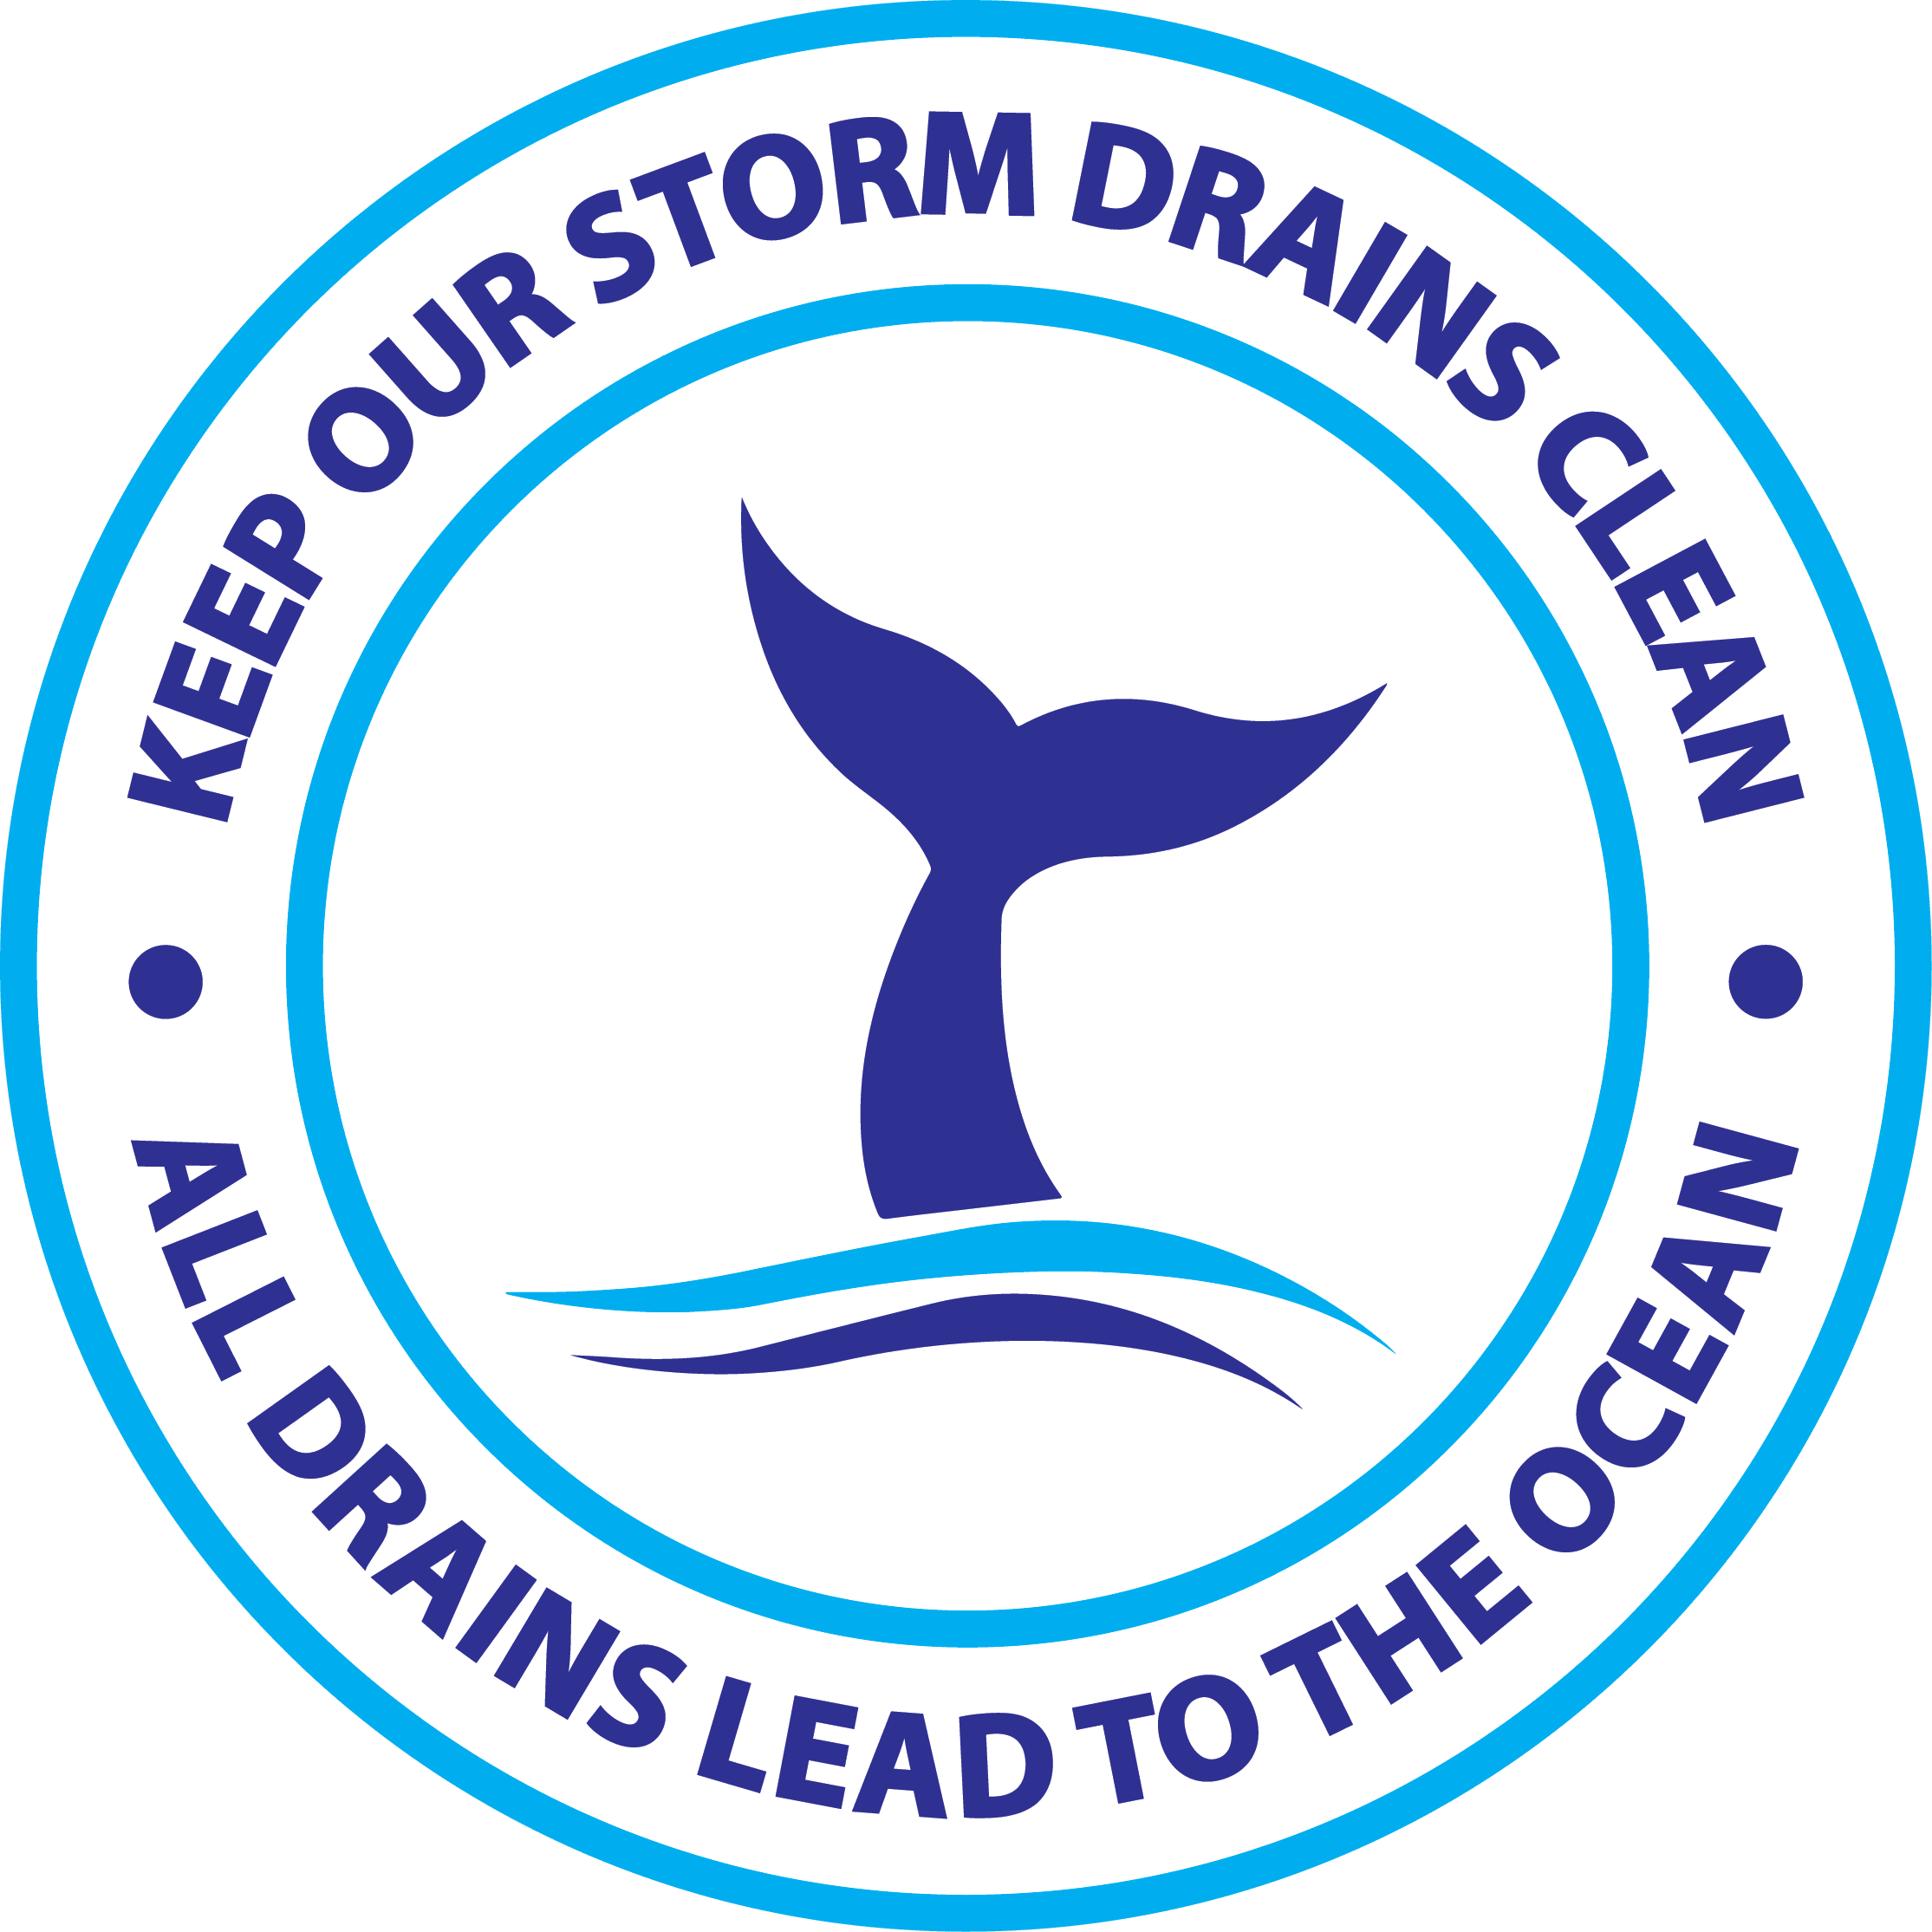 drains to ocean logo